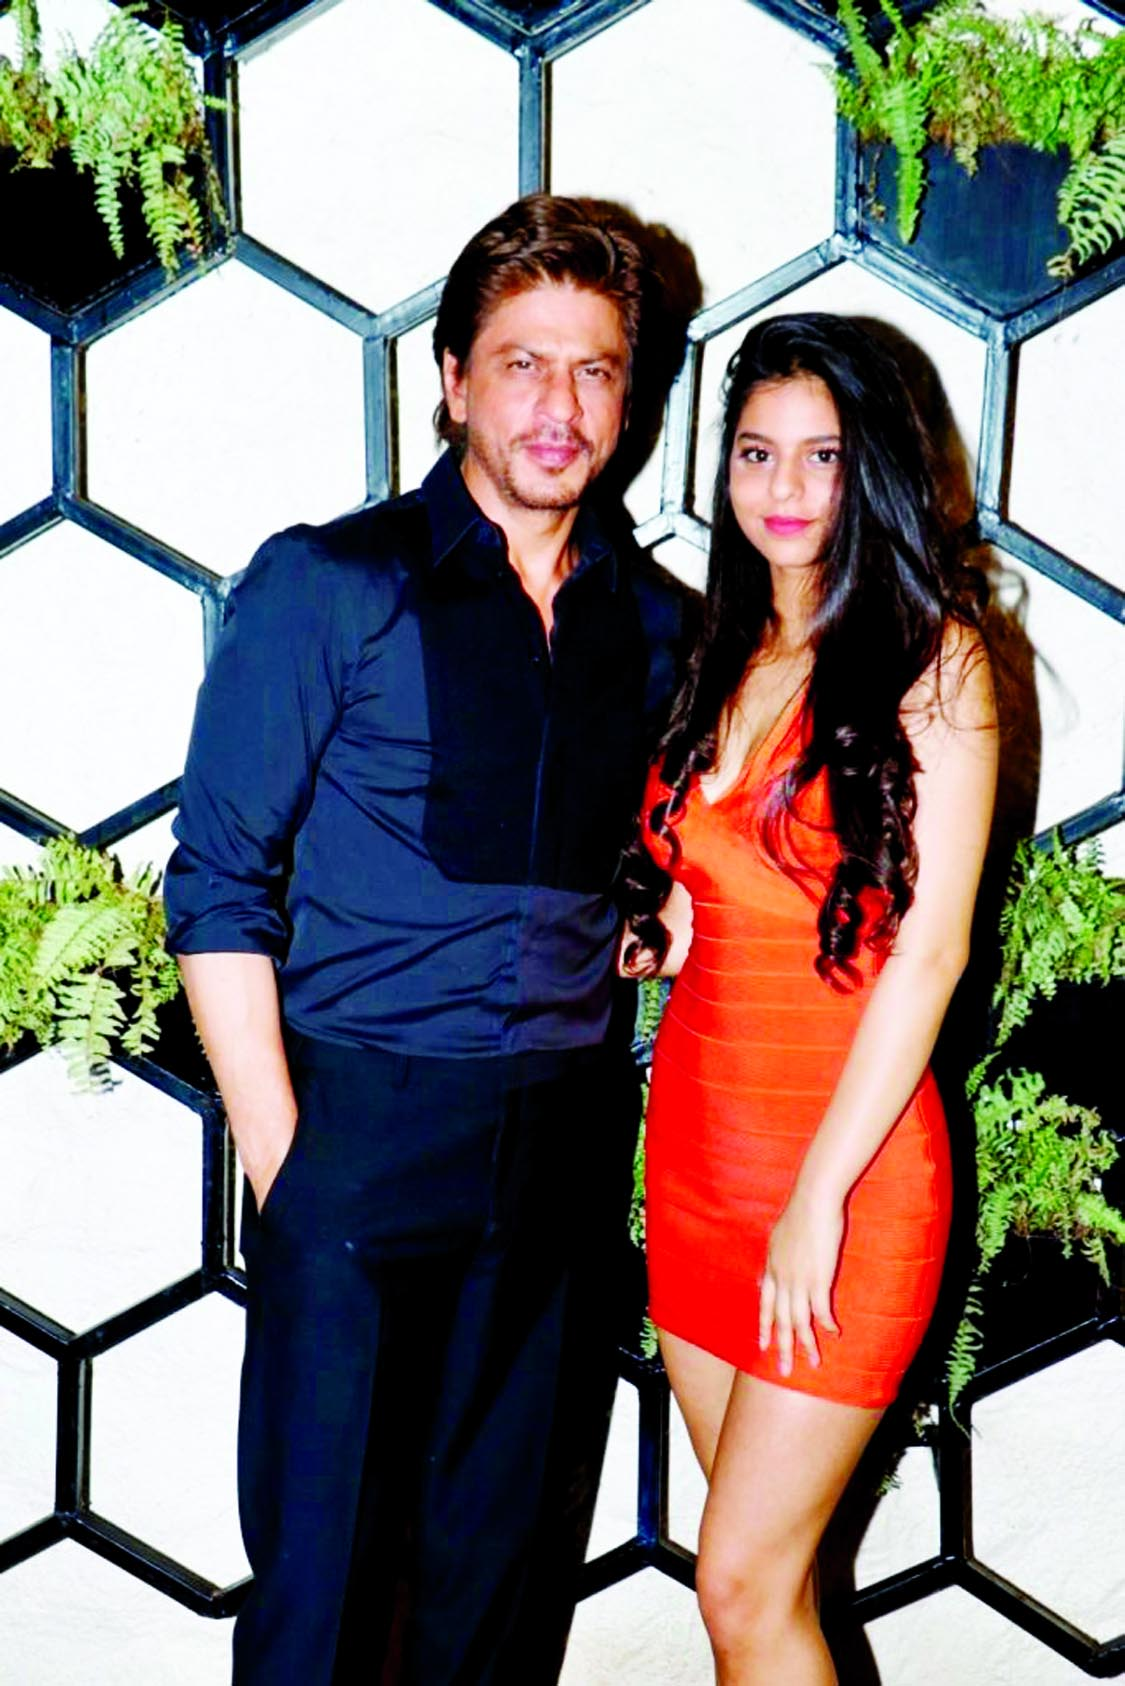 When Shah Rukh missed his daughter, Suhana